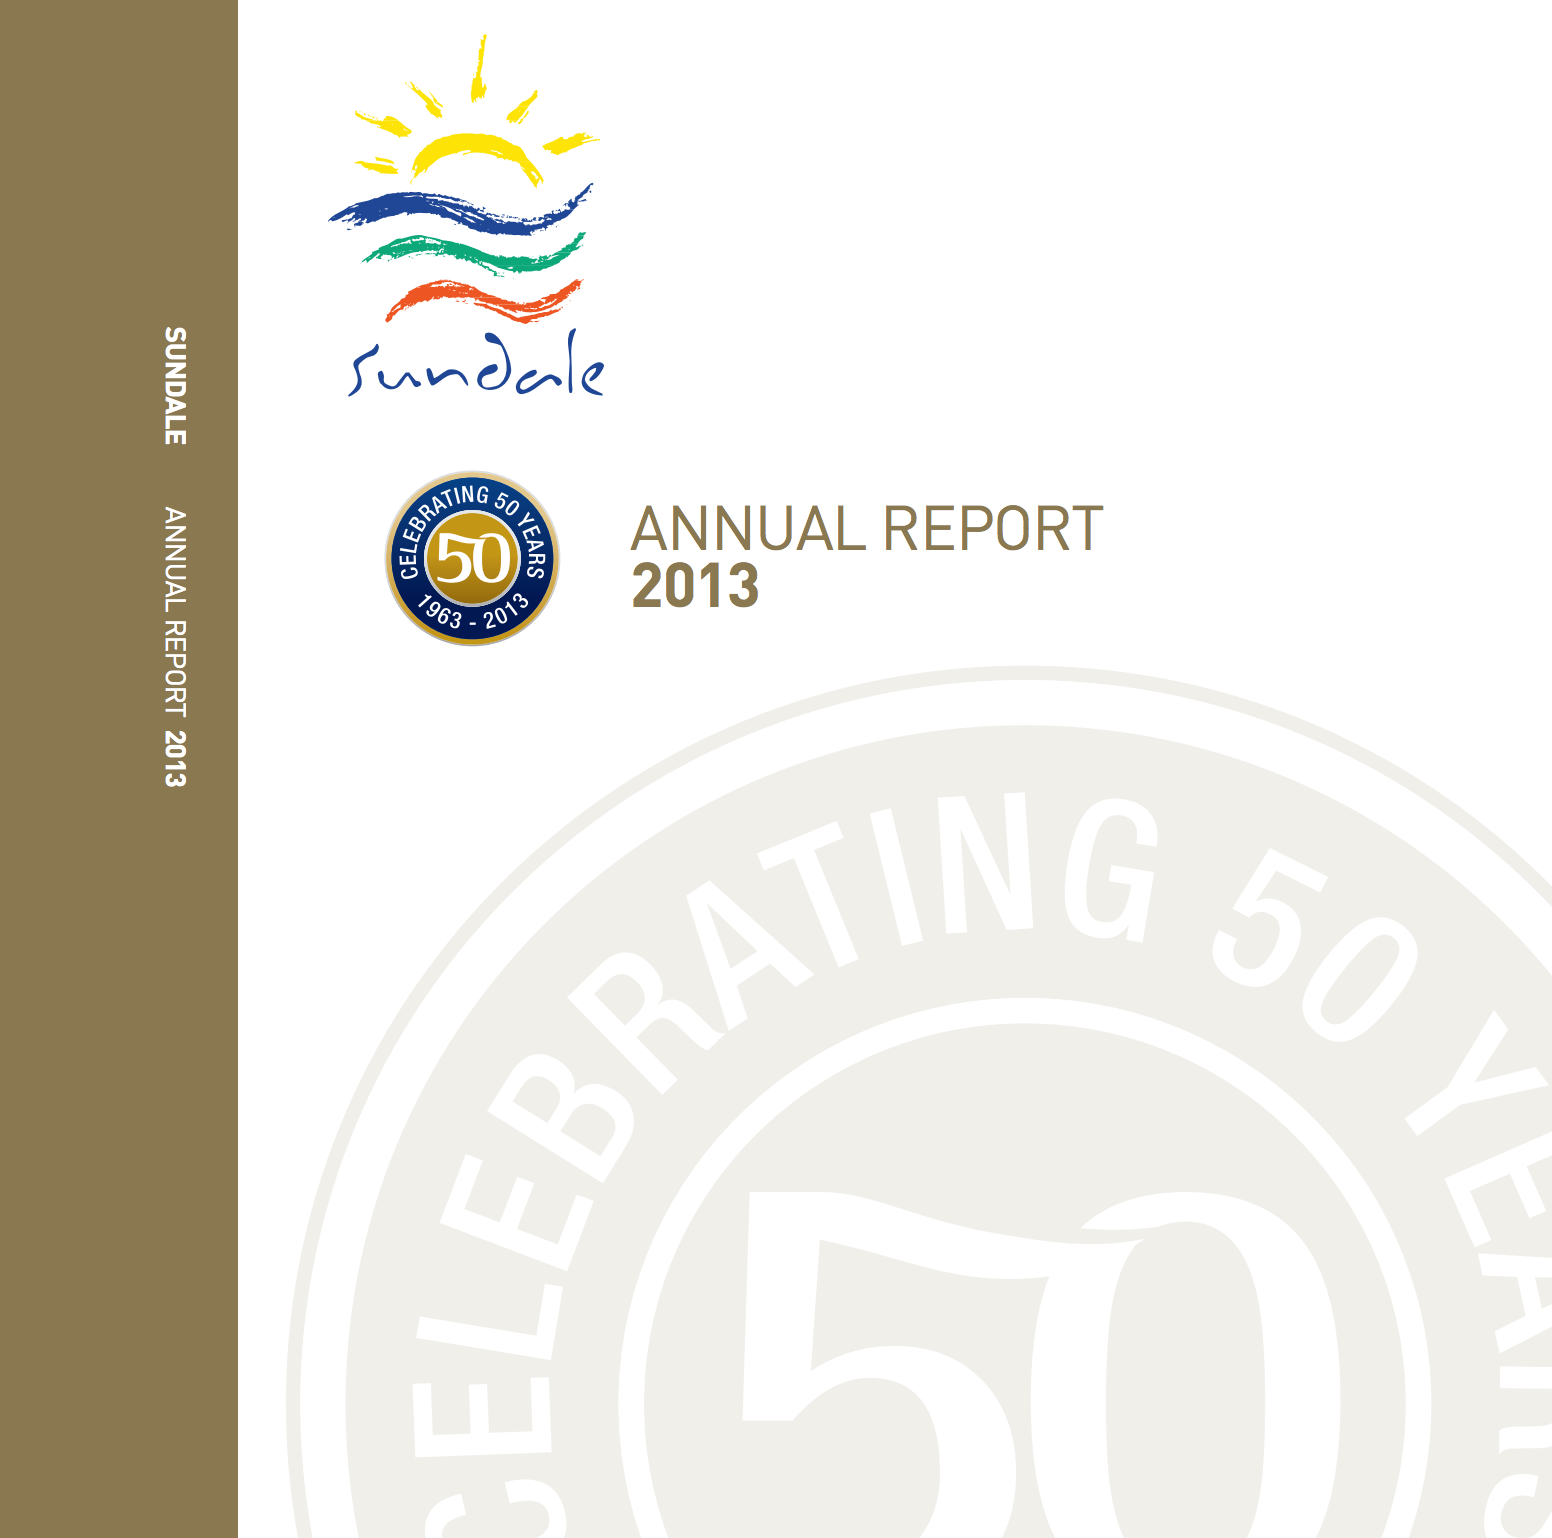 Sundale Annual Report 2013.png